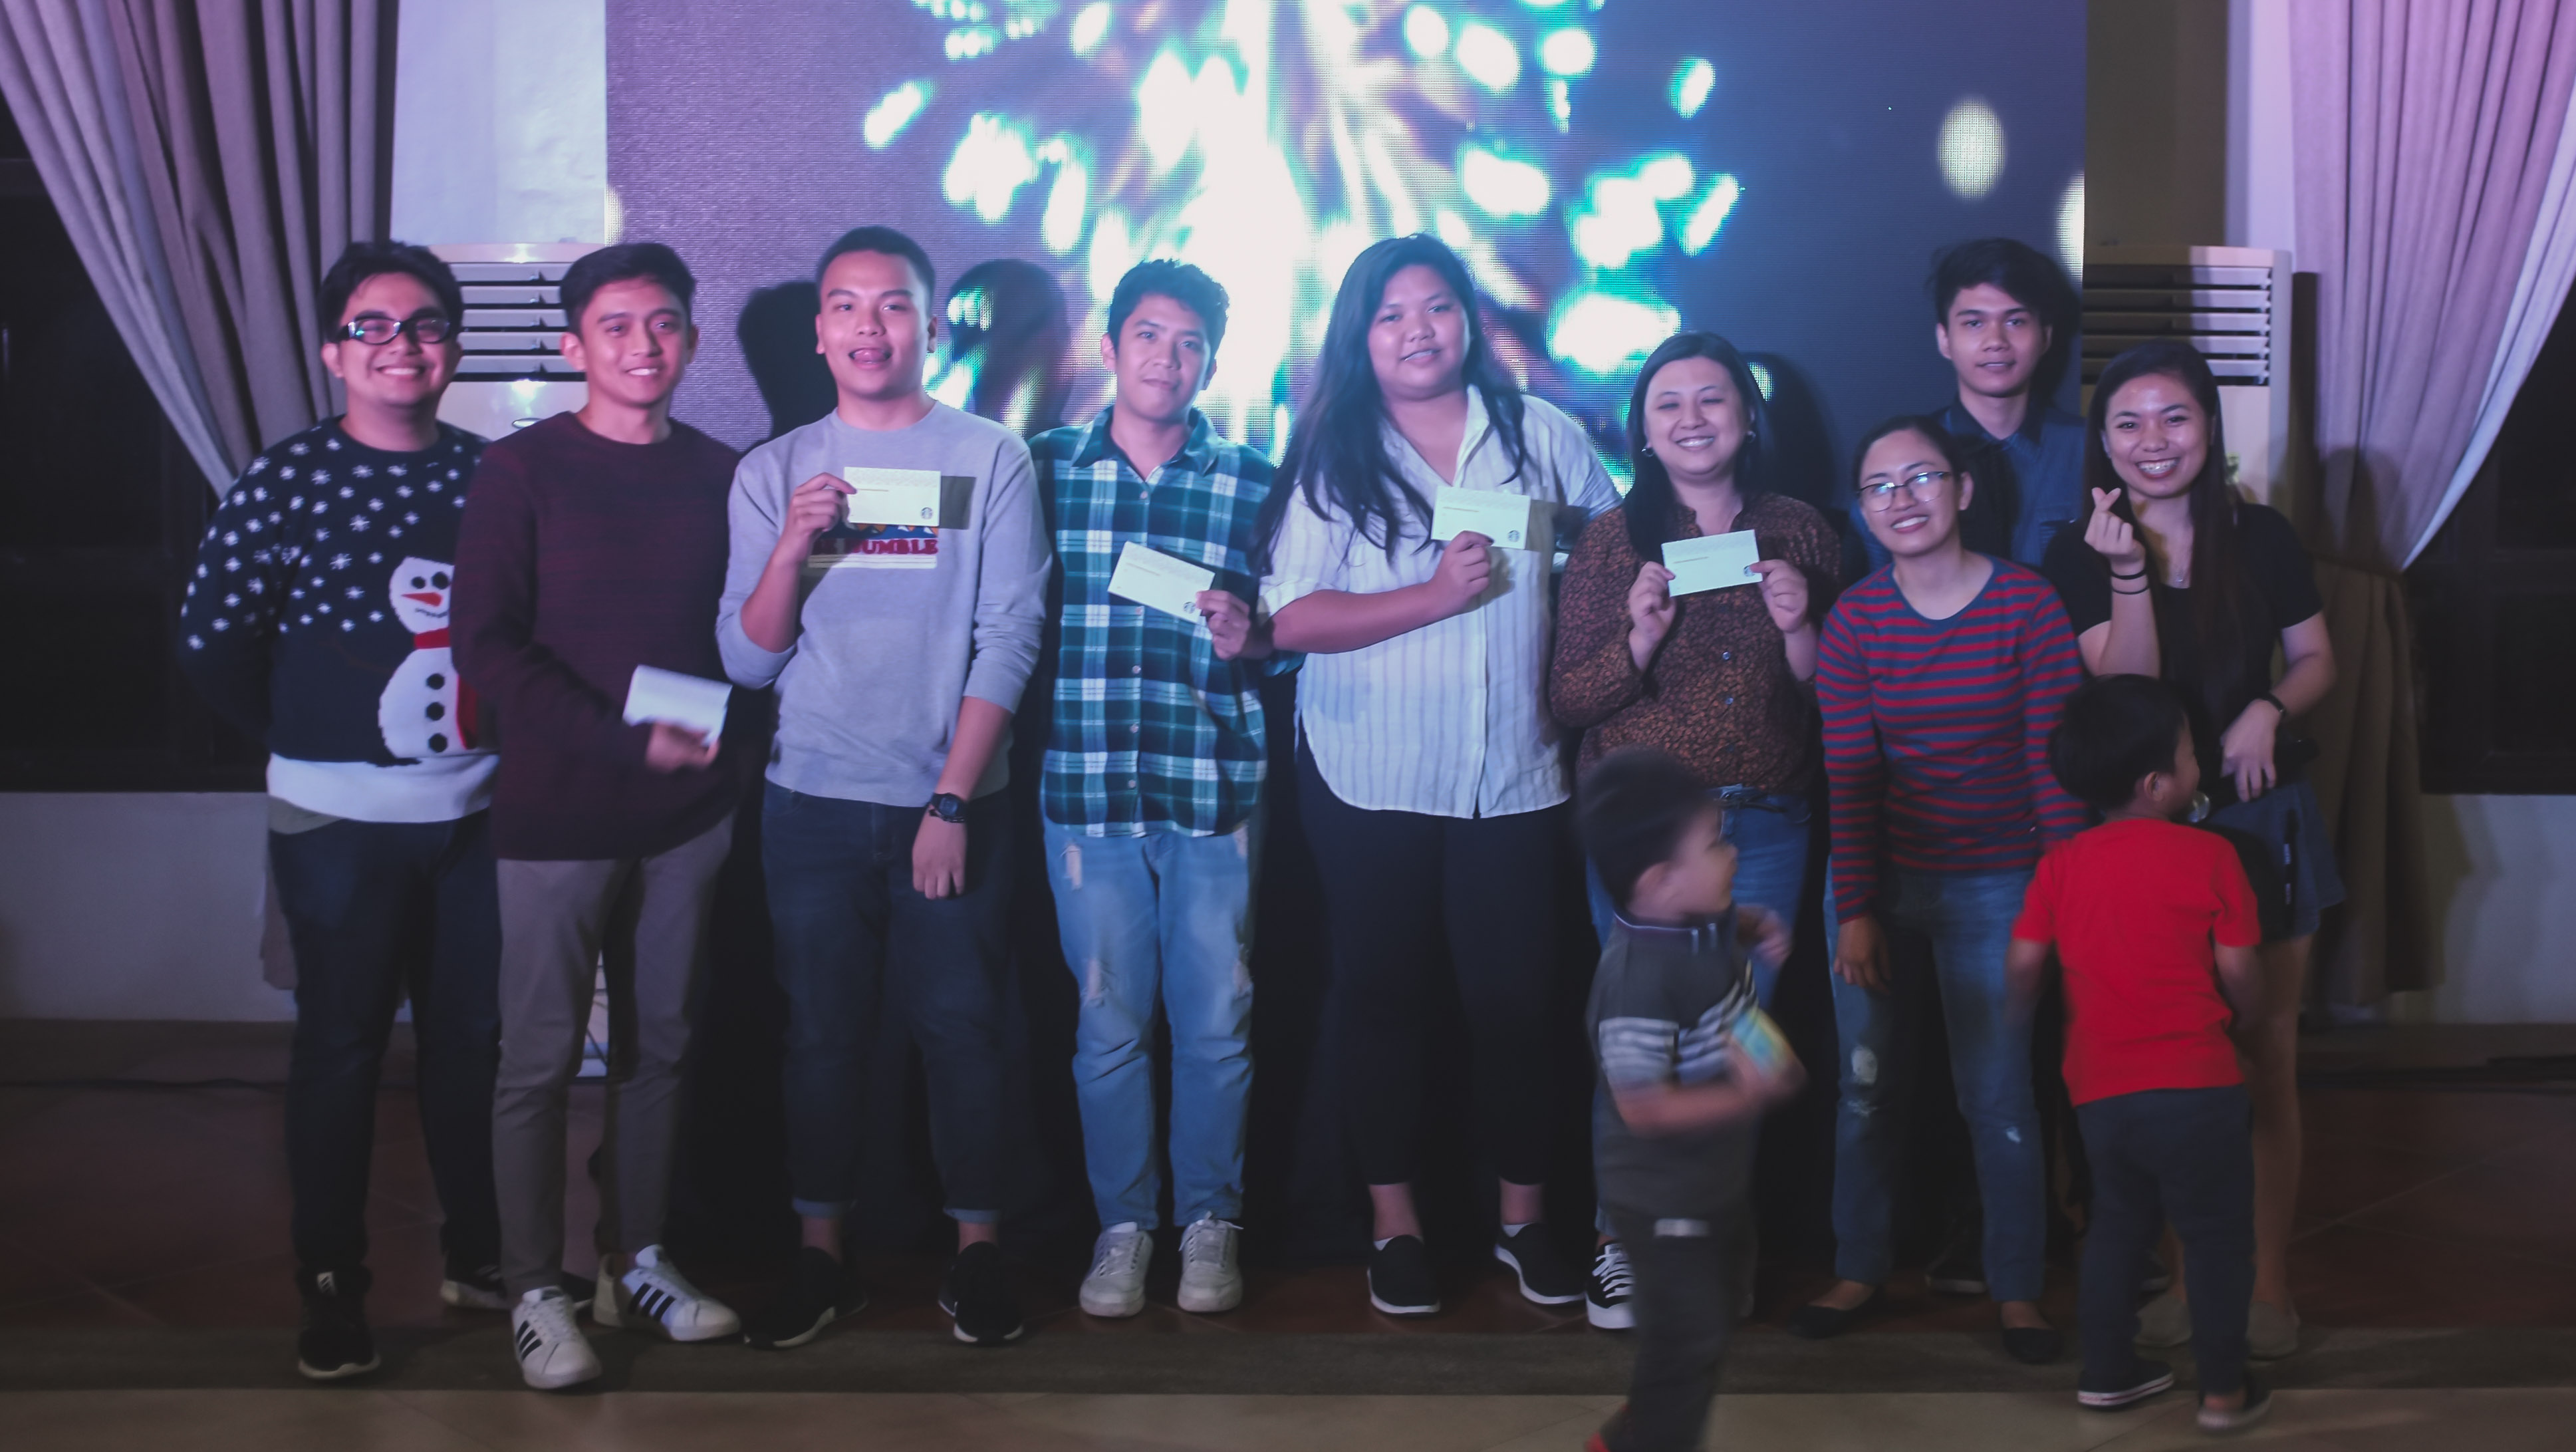 CHRISTMAS PARTY_2018-194288 x 2416